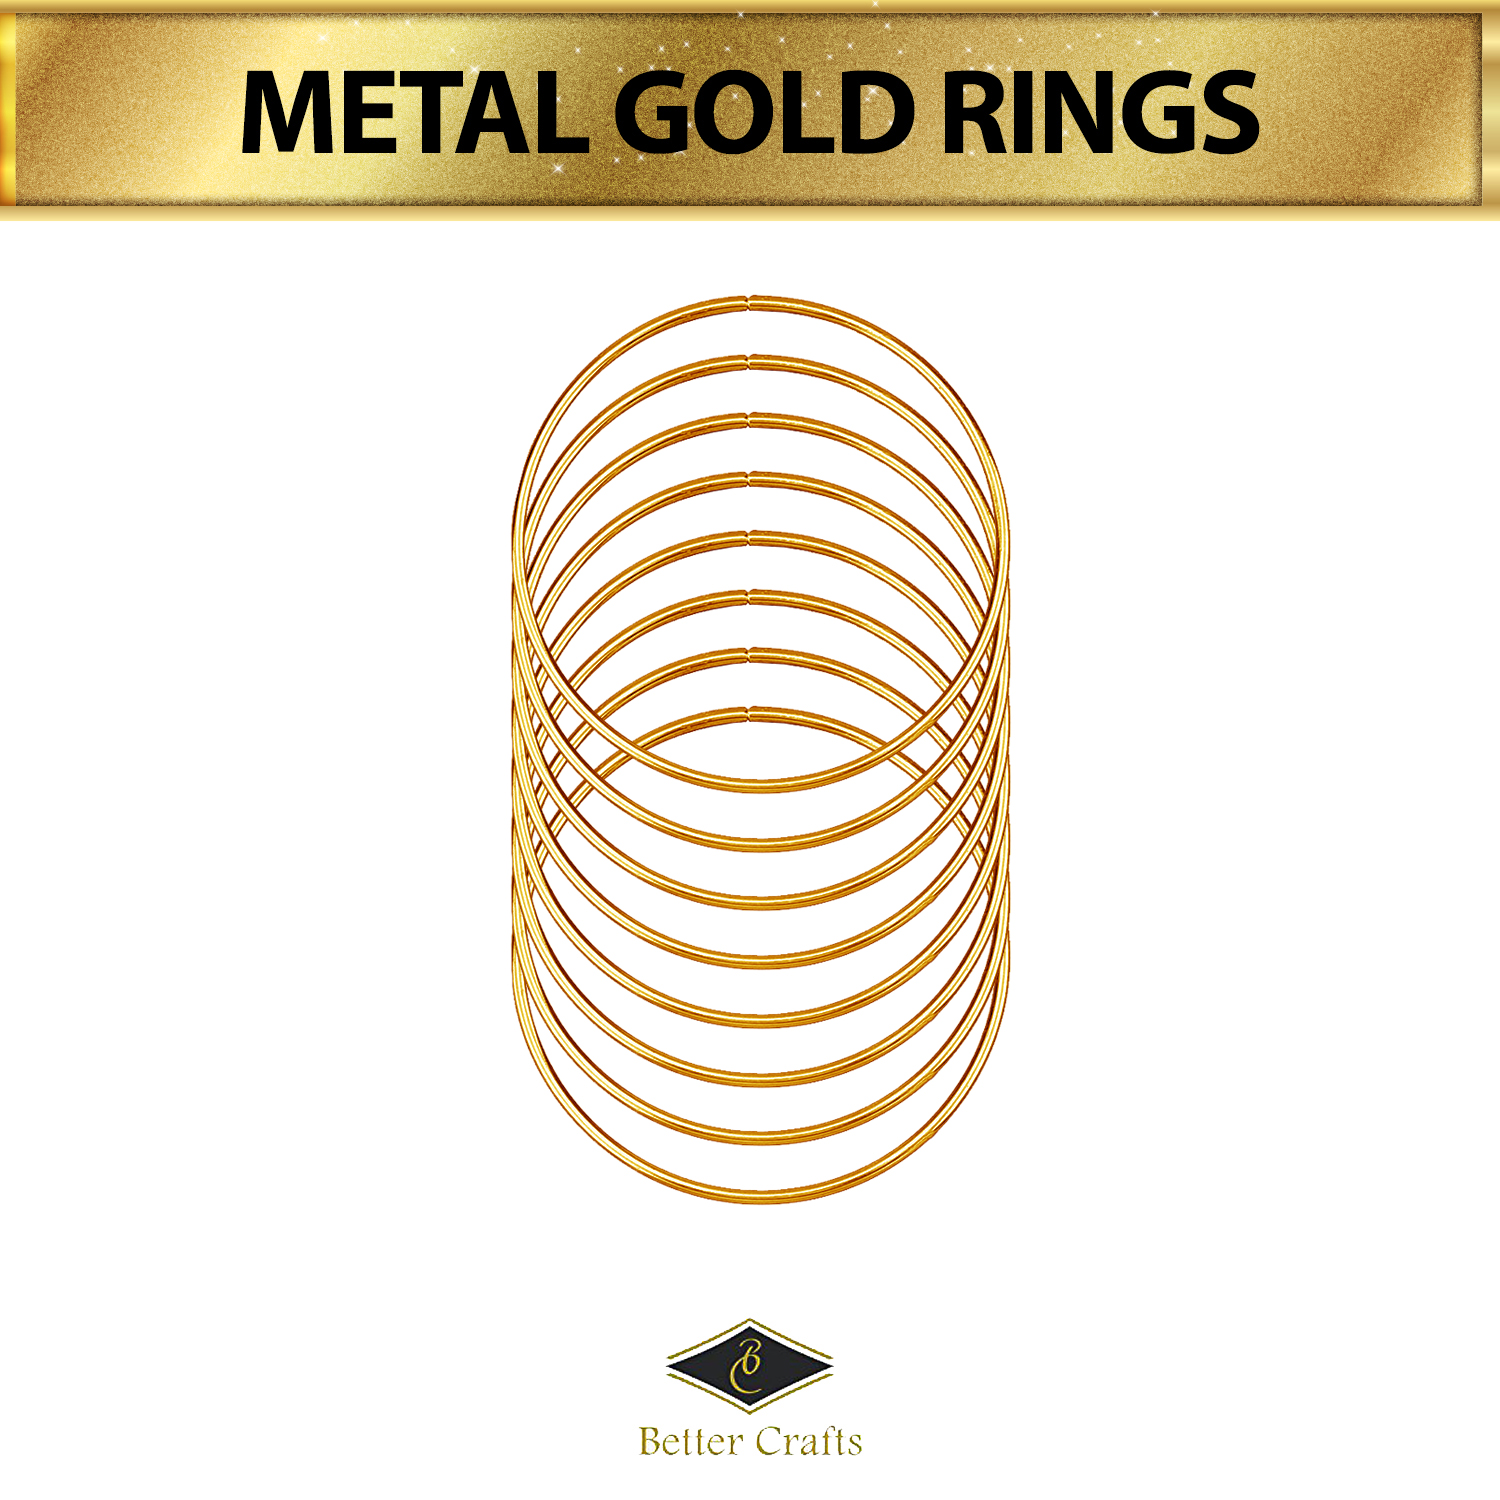 Set of 6 Pieces Assorted METAL GOLD RINGS for Crafts 1 inch/ 2 inch/ 3 inch/ 4 inch/ 5 inch/ 6 inch